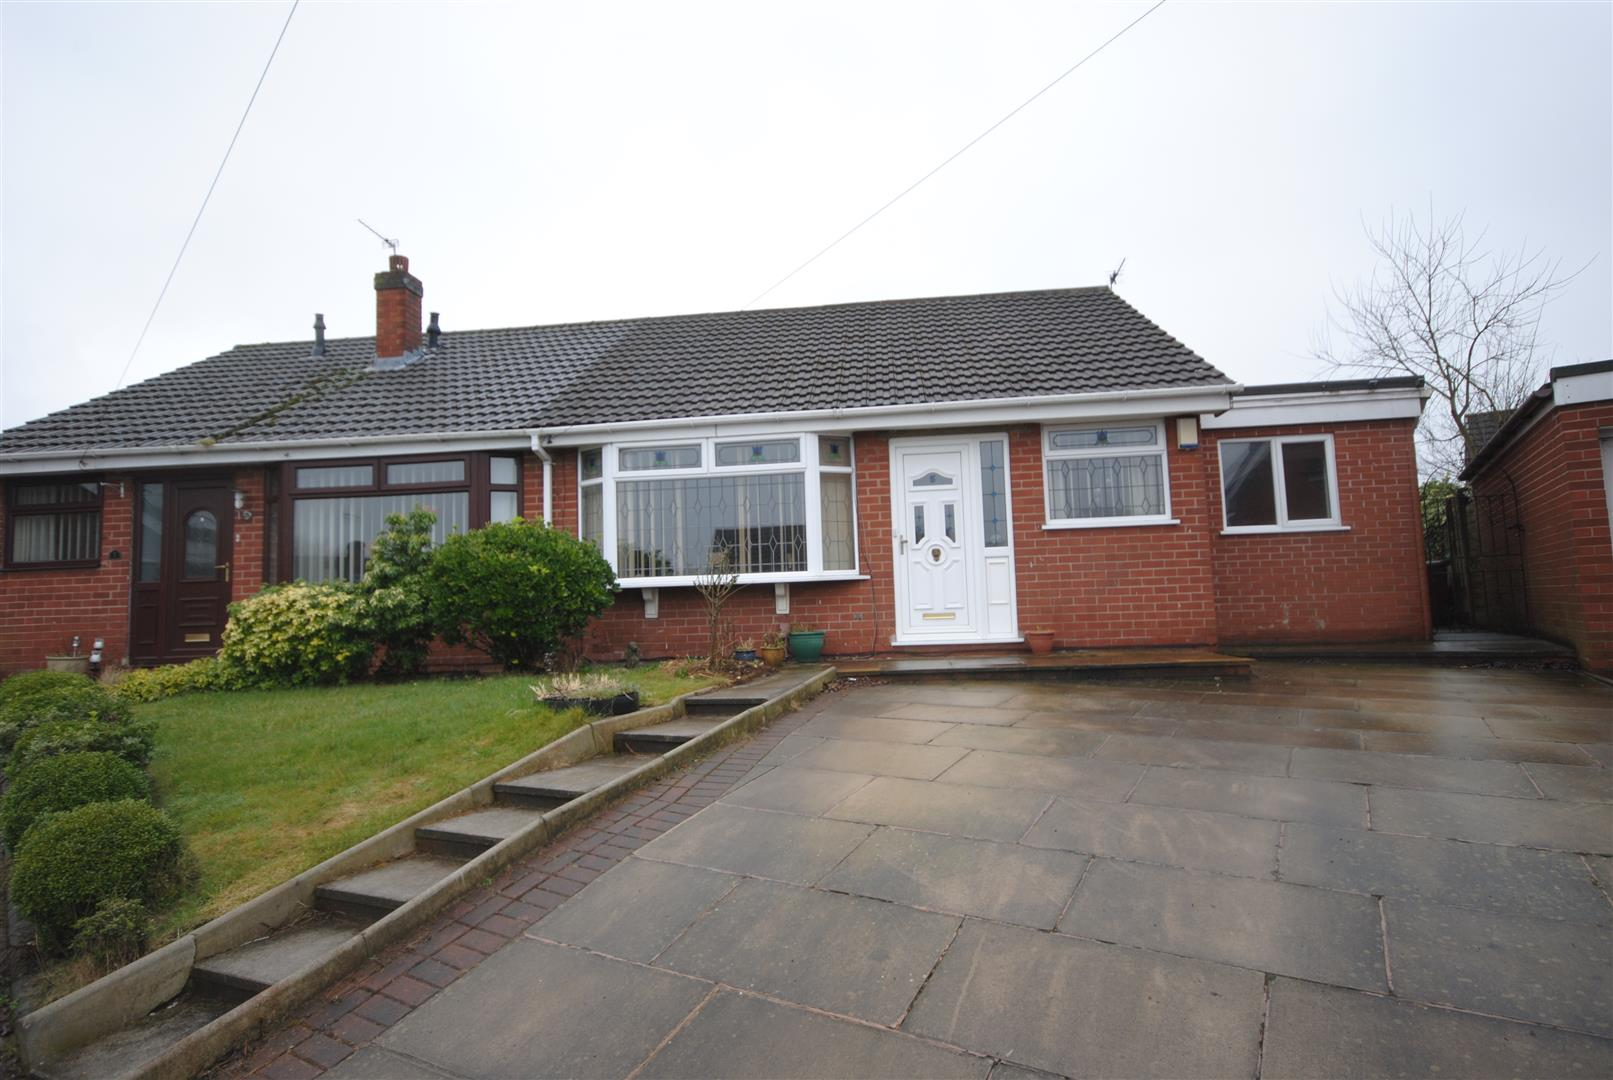 3 Bedrooms Semi Detached Bungalow for sale in Fardon Close, Wigan